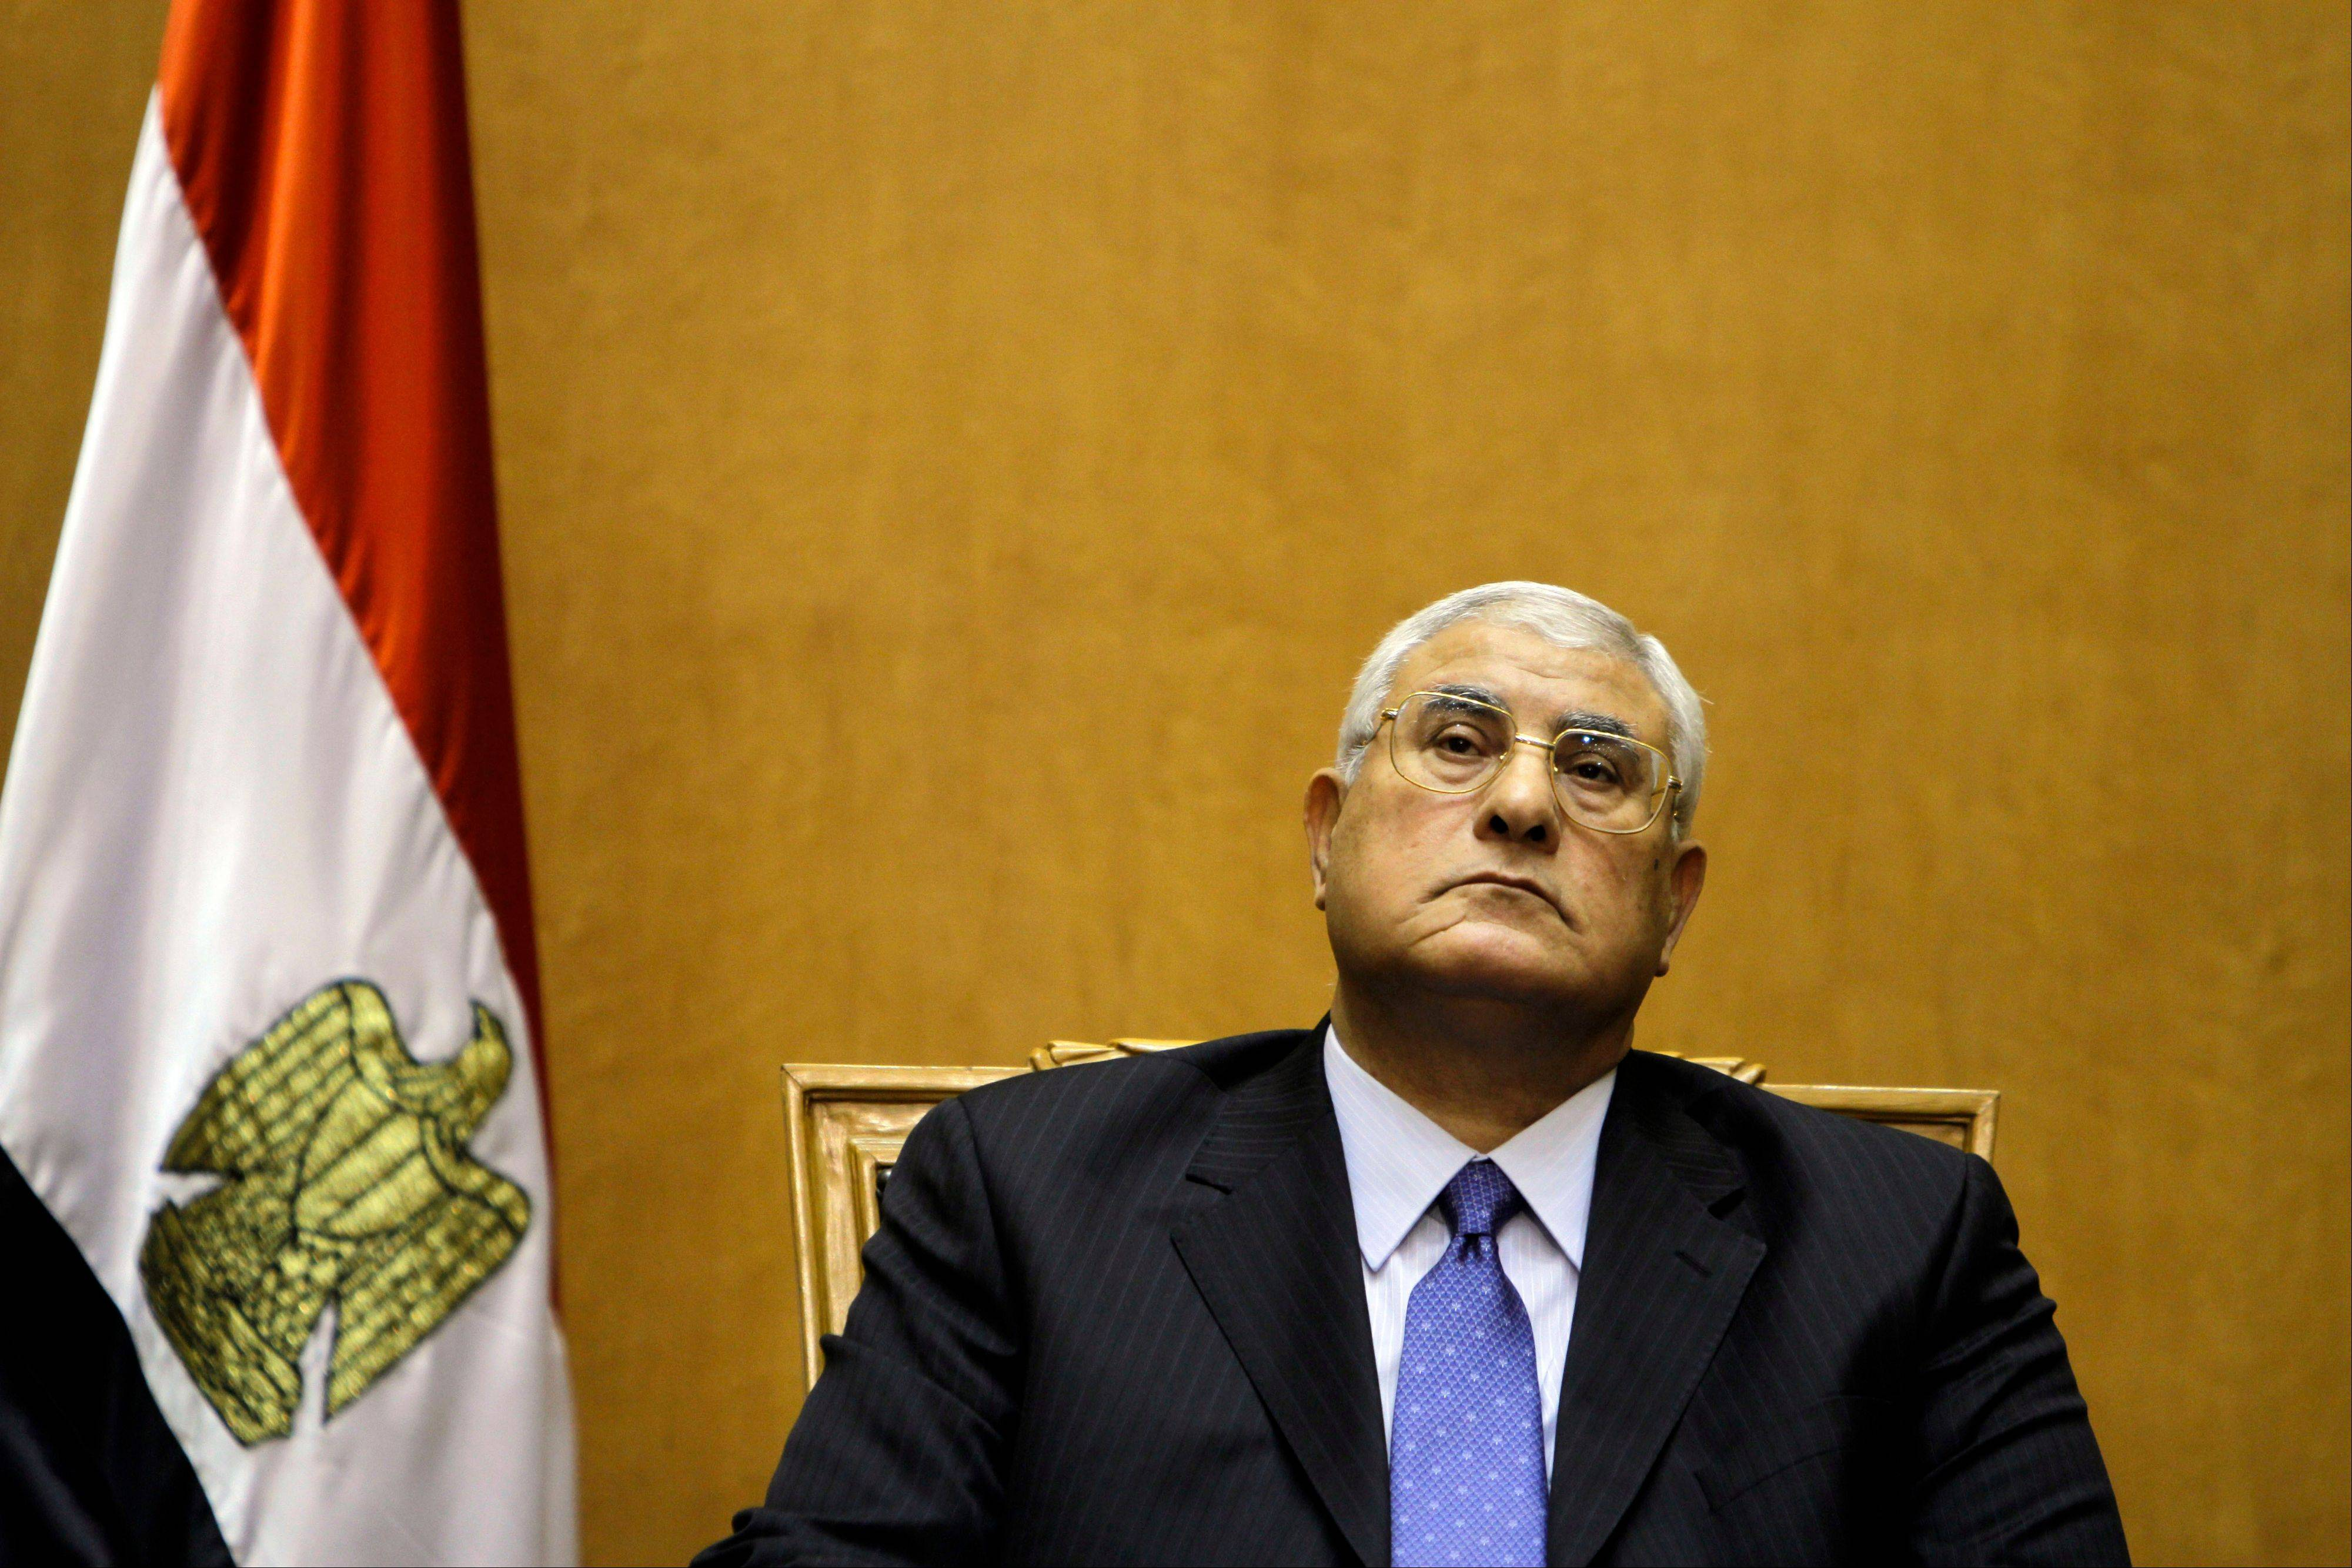 Egypt's chief justice Adly Mansour prepares to be sworn in as the nation's interim president Thursday, July 4, 2013. The chief justice of Egypt's Supreme Constitutional Court was sworn in Thursday as the nation's interim president, taking over hours after the military ousted the Islamist President Mohammed Morsi.